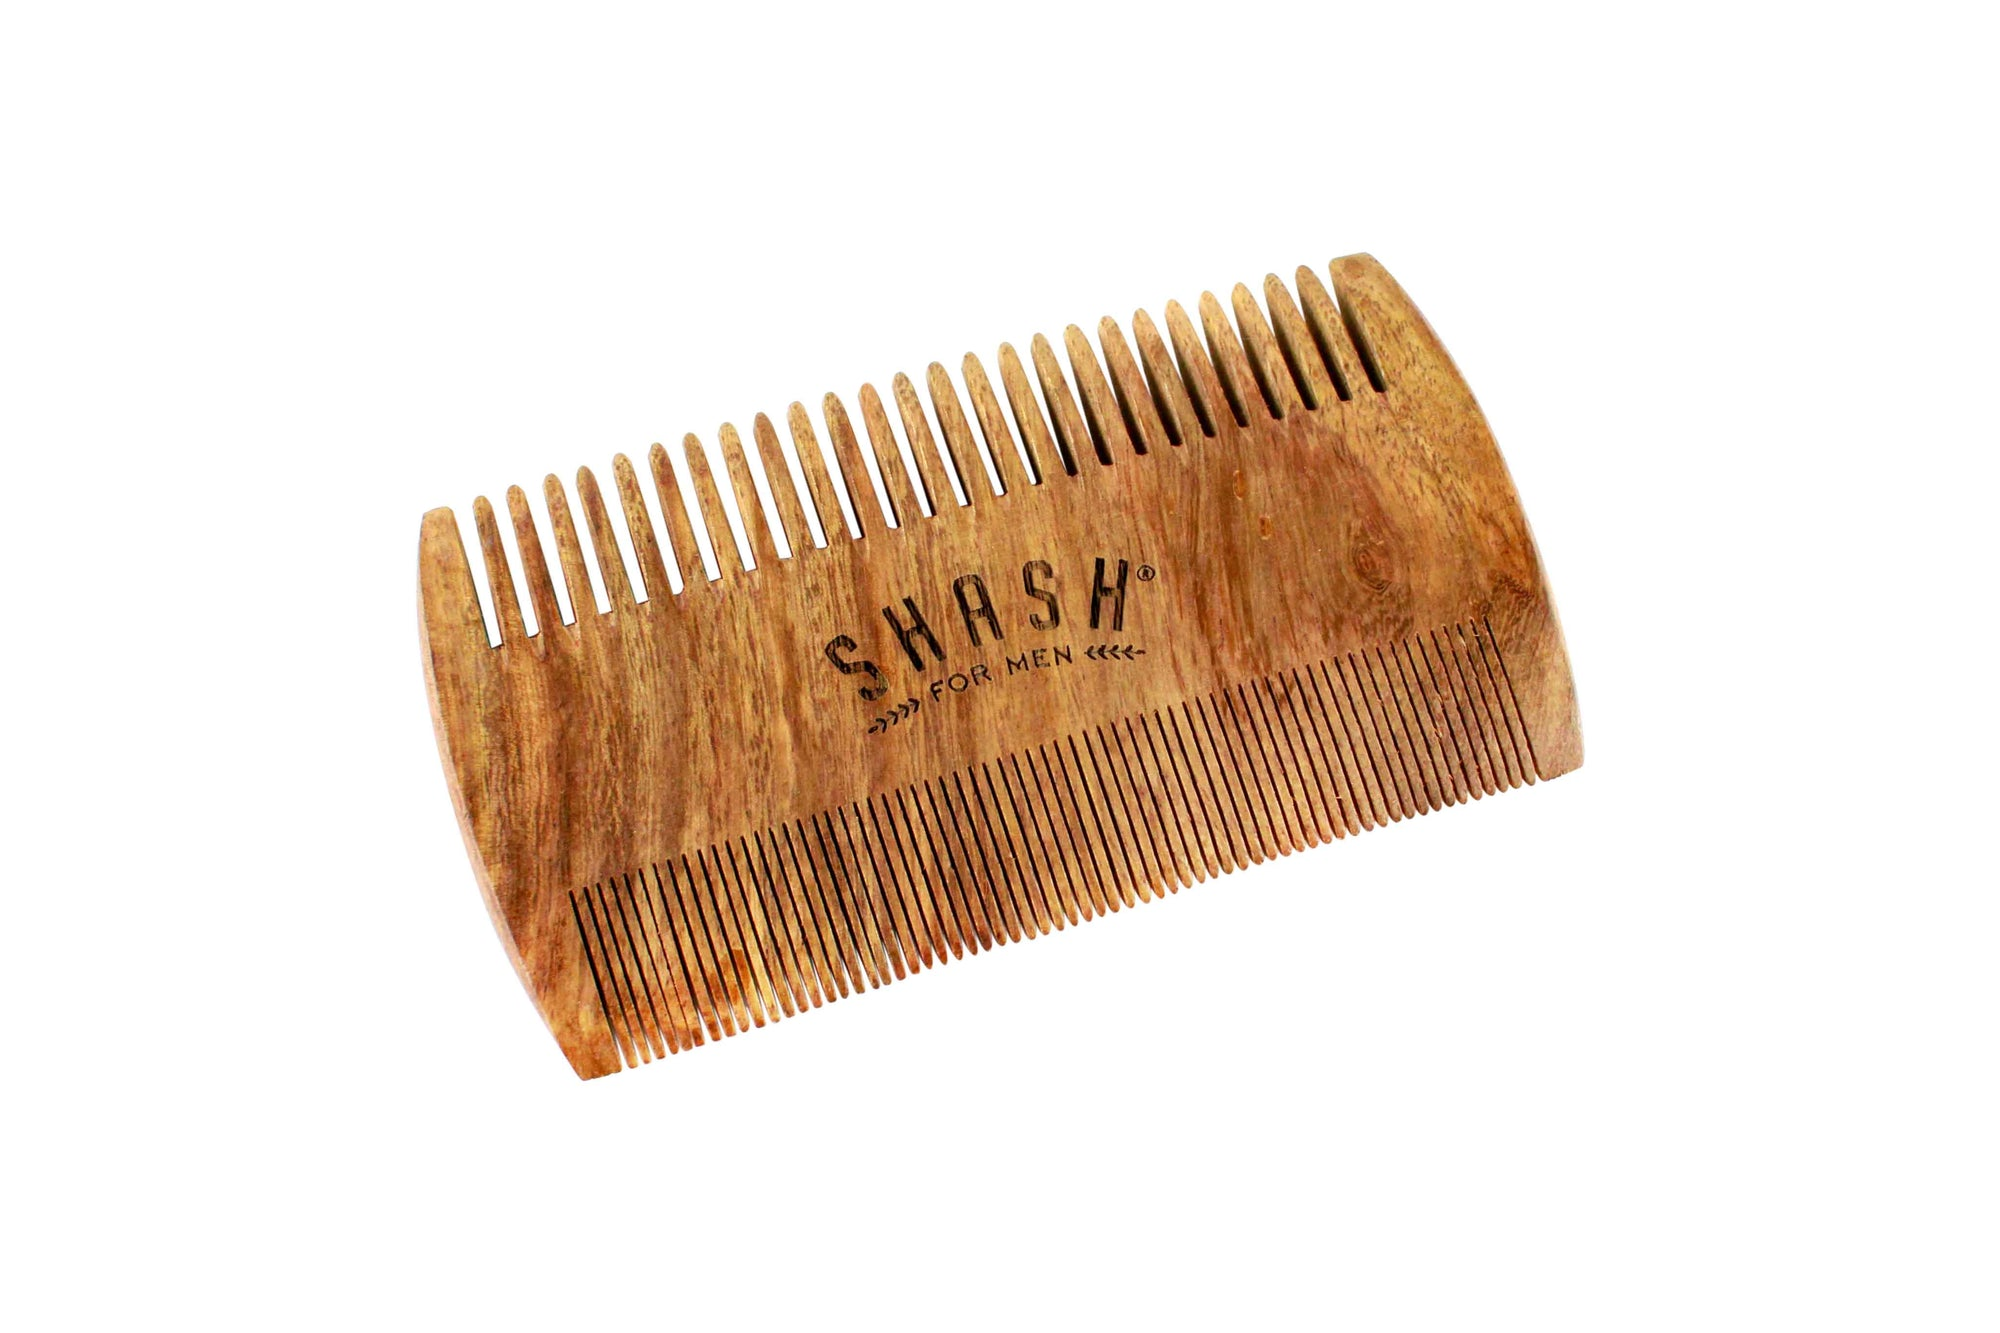 2-SIDED SANDALWOOD BEARD COMB